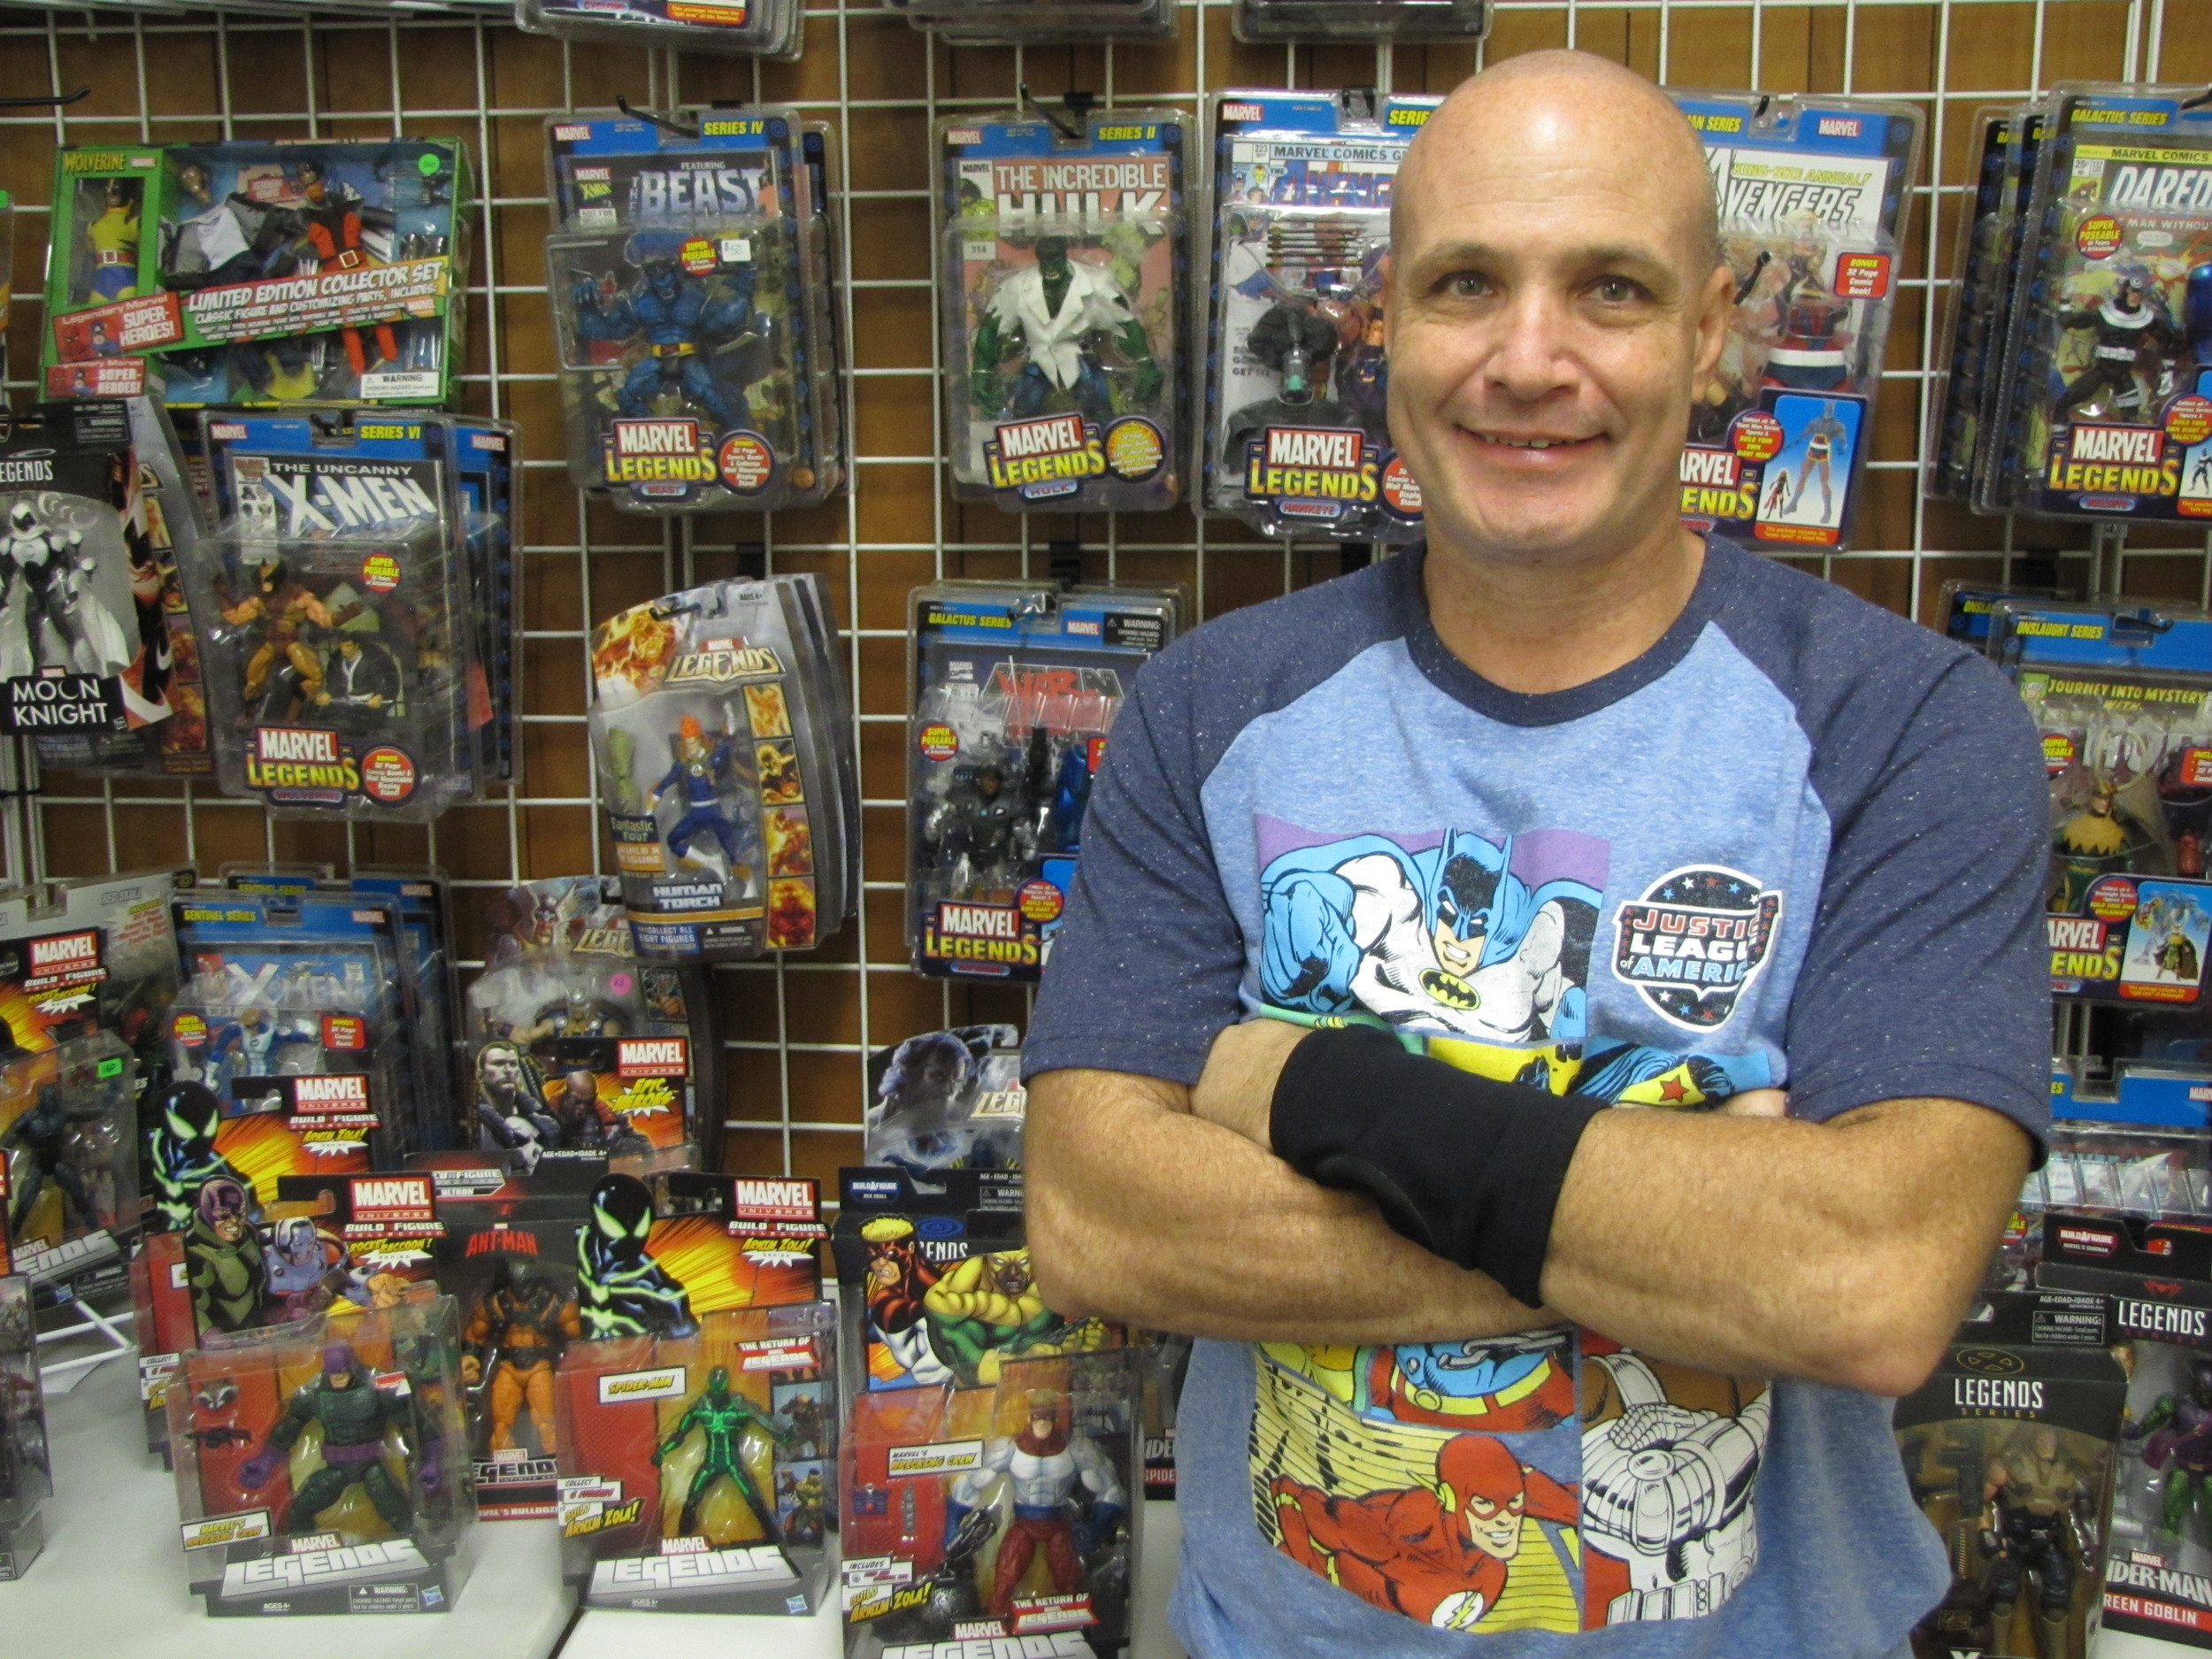 Saturday marked the third time vendor Bill Fury has made an appearance at the North Georgia Dixie Diecast and Toy Collectibles event in Cartersville.